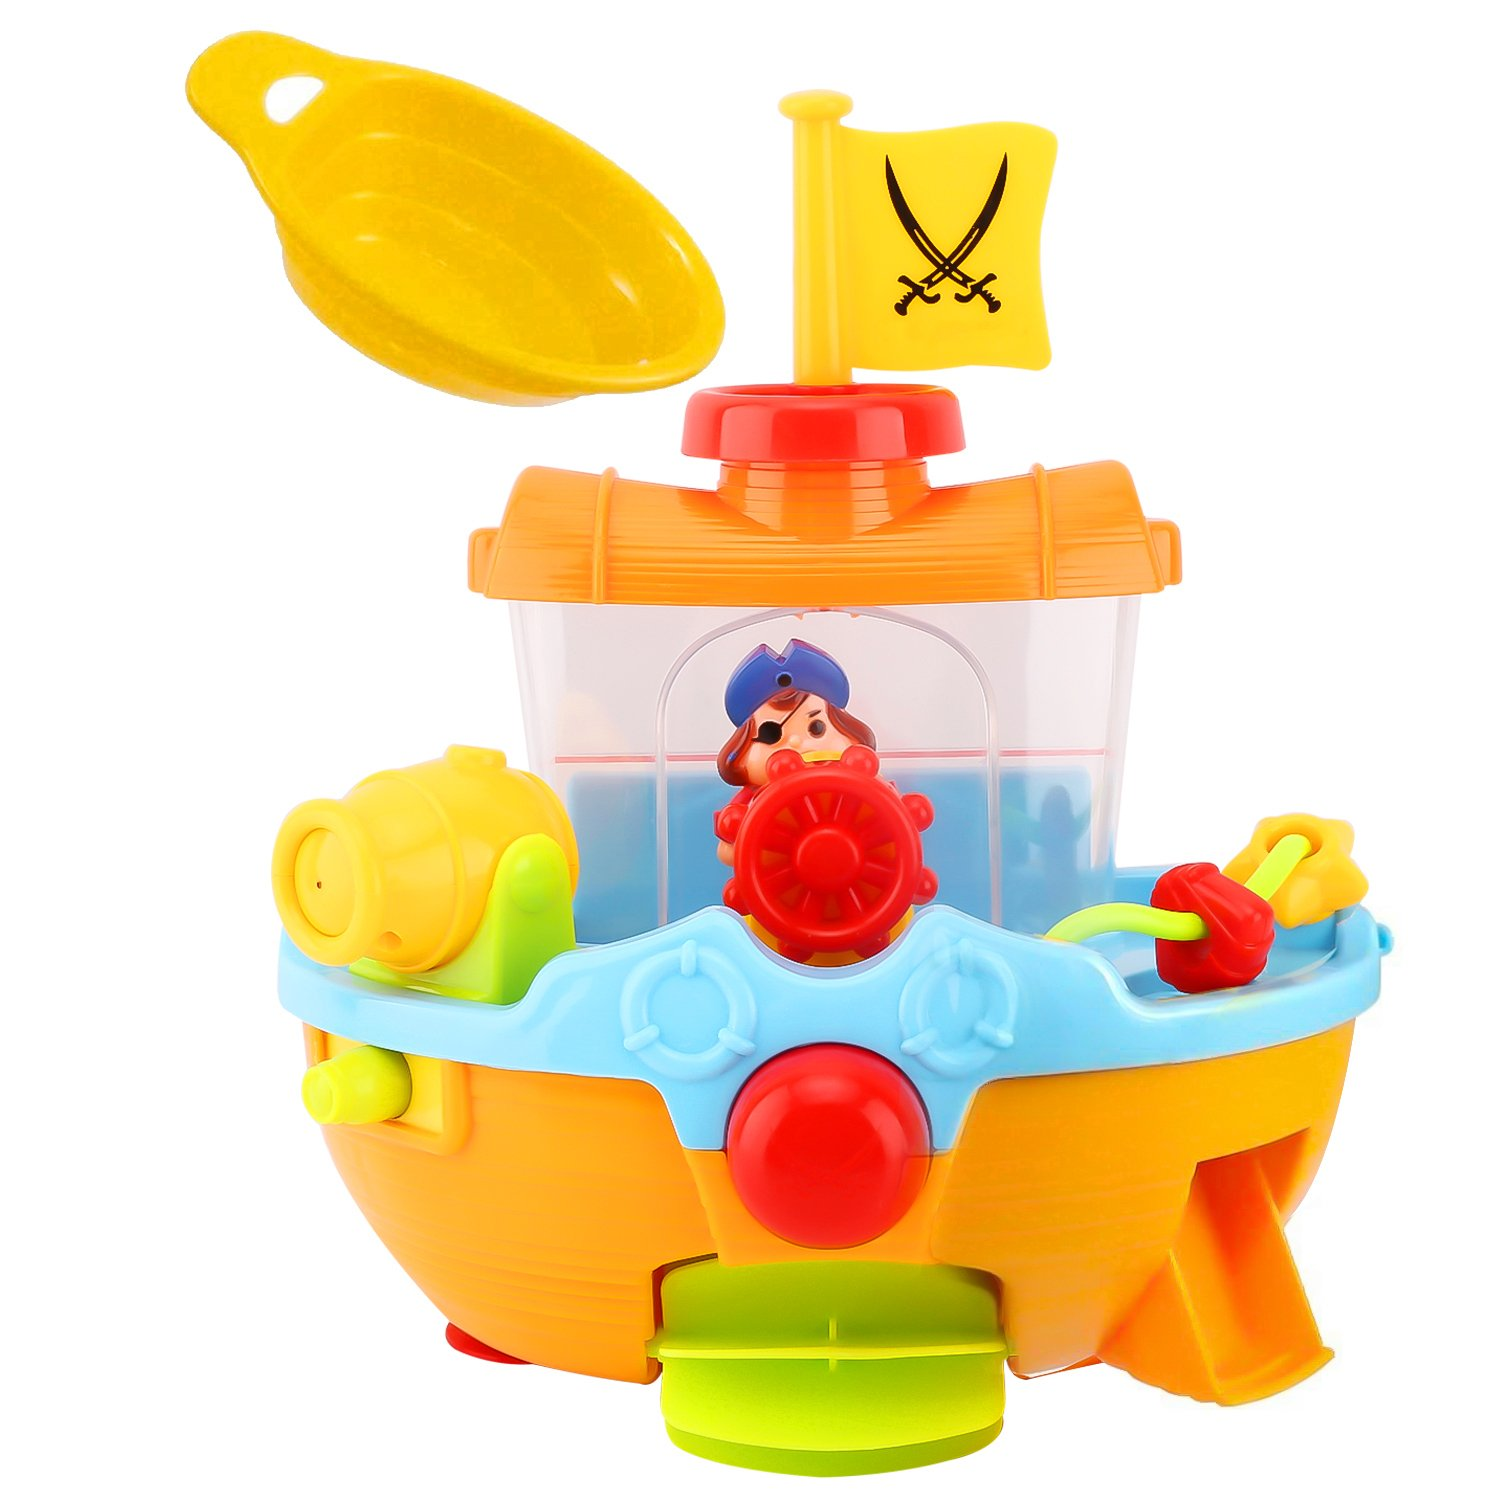 Pirate Ship Bath Toy Baby/Child/Toddler Squirting Bath Pool Activity ...